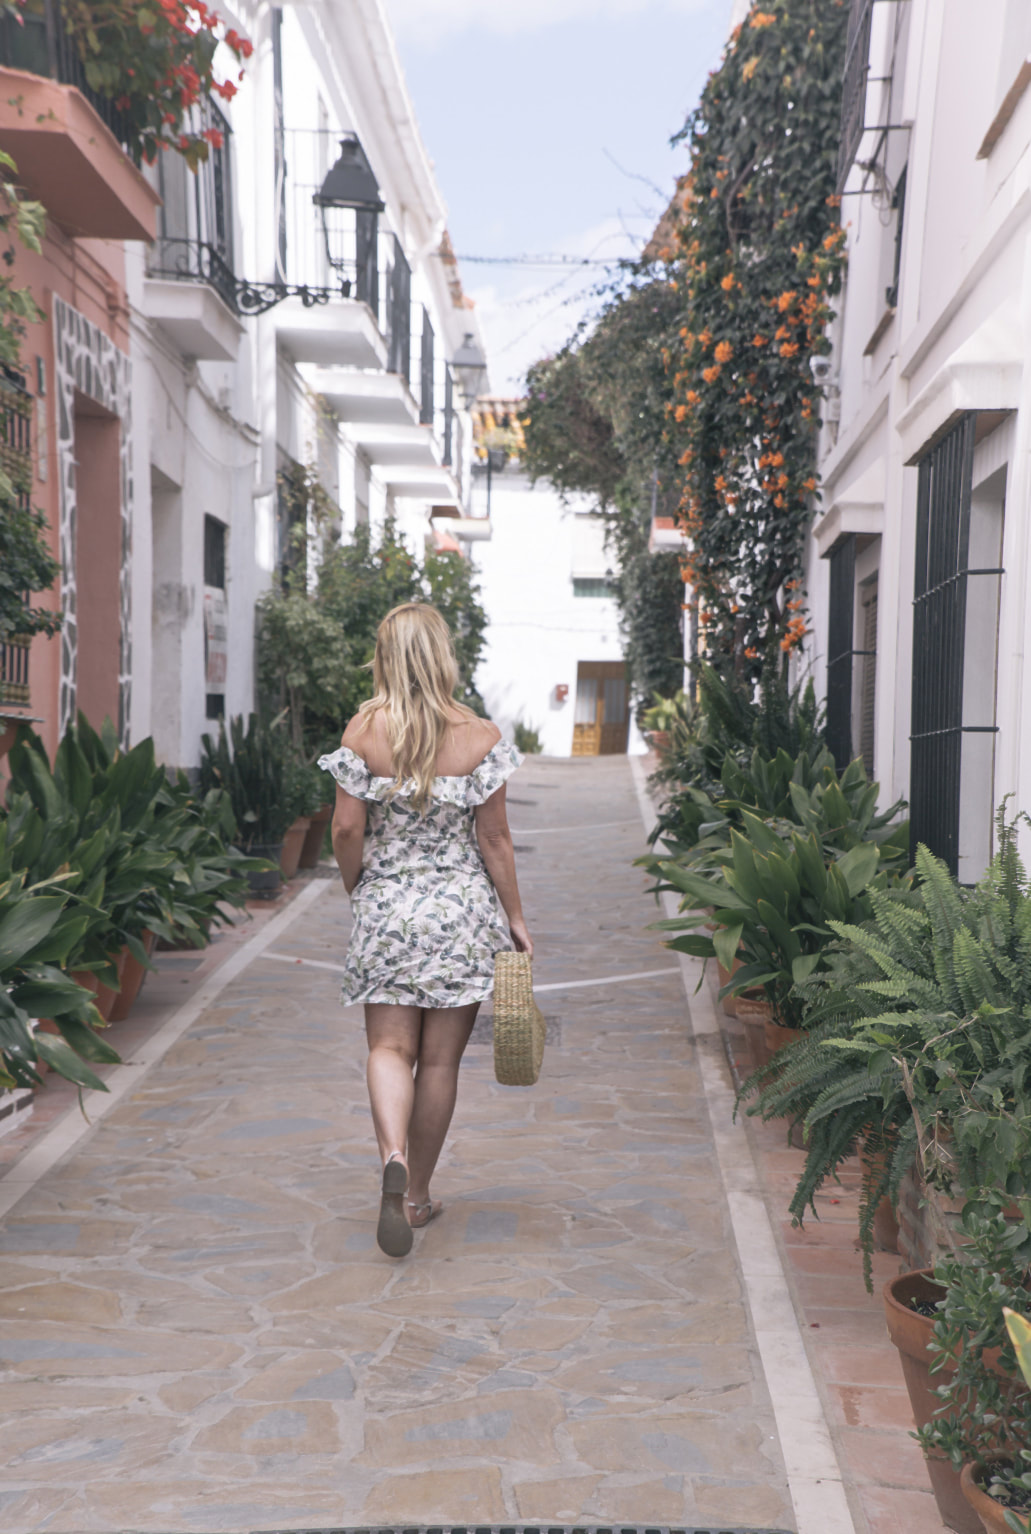 A coastal walk from Puerto banus to Marbella old town by The Belle Blog